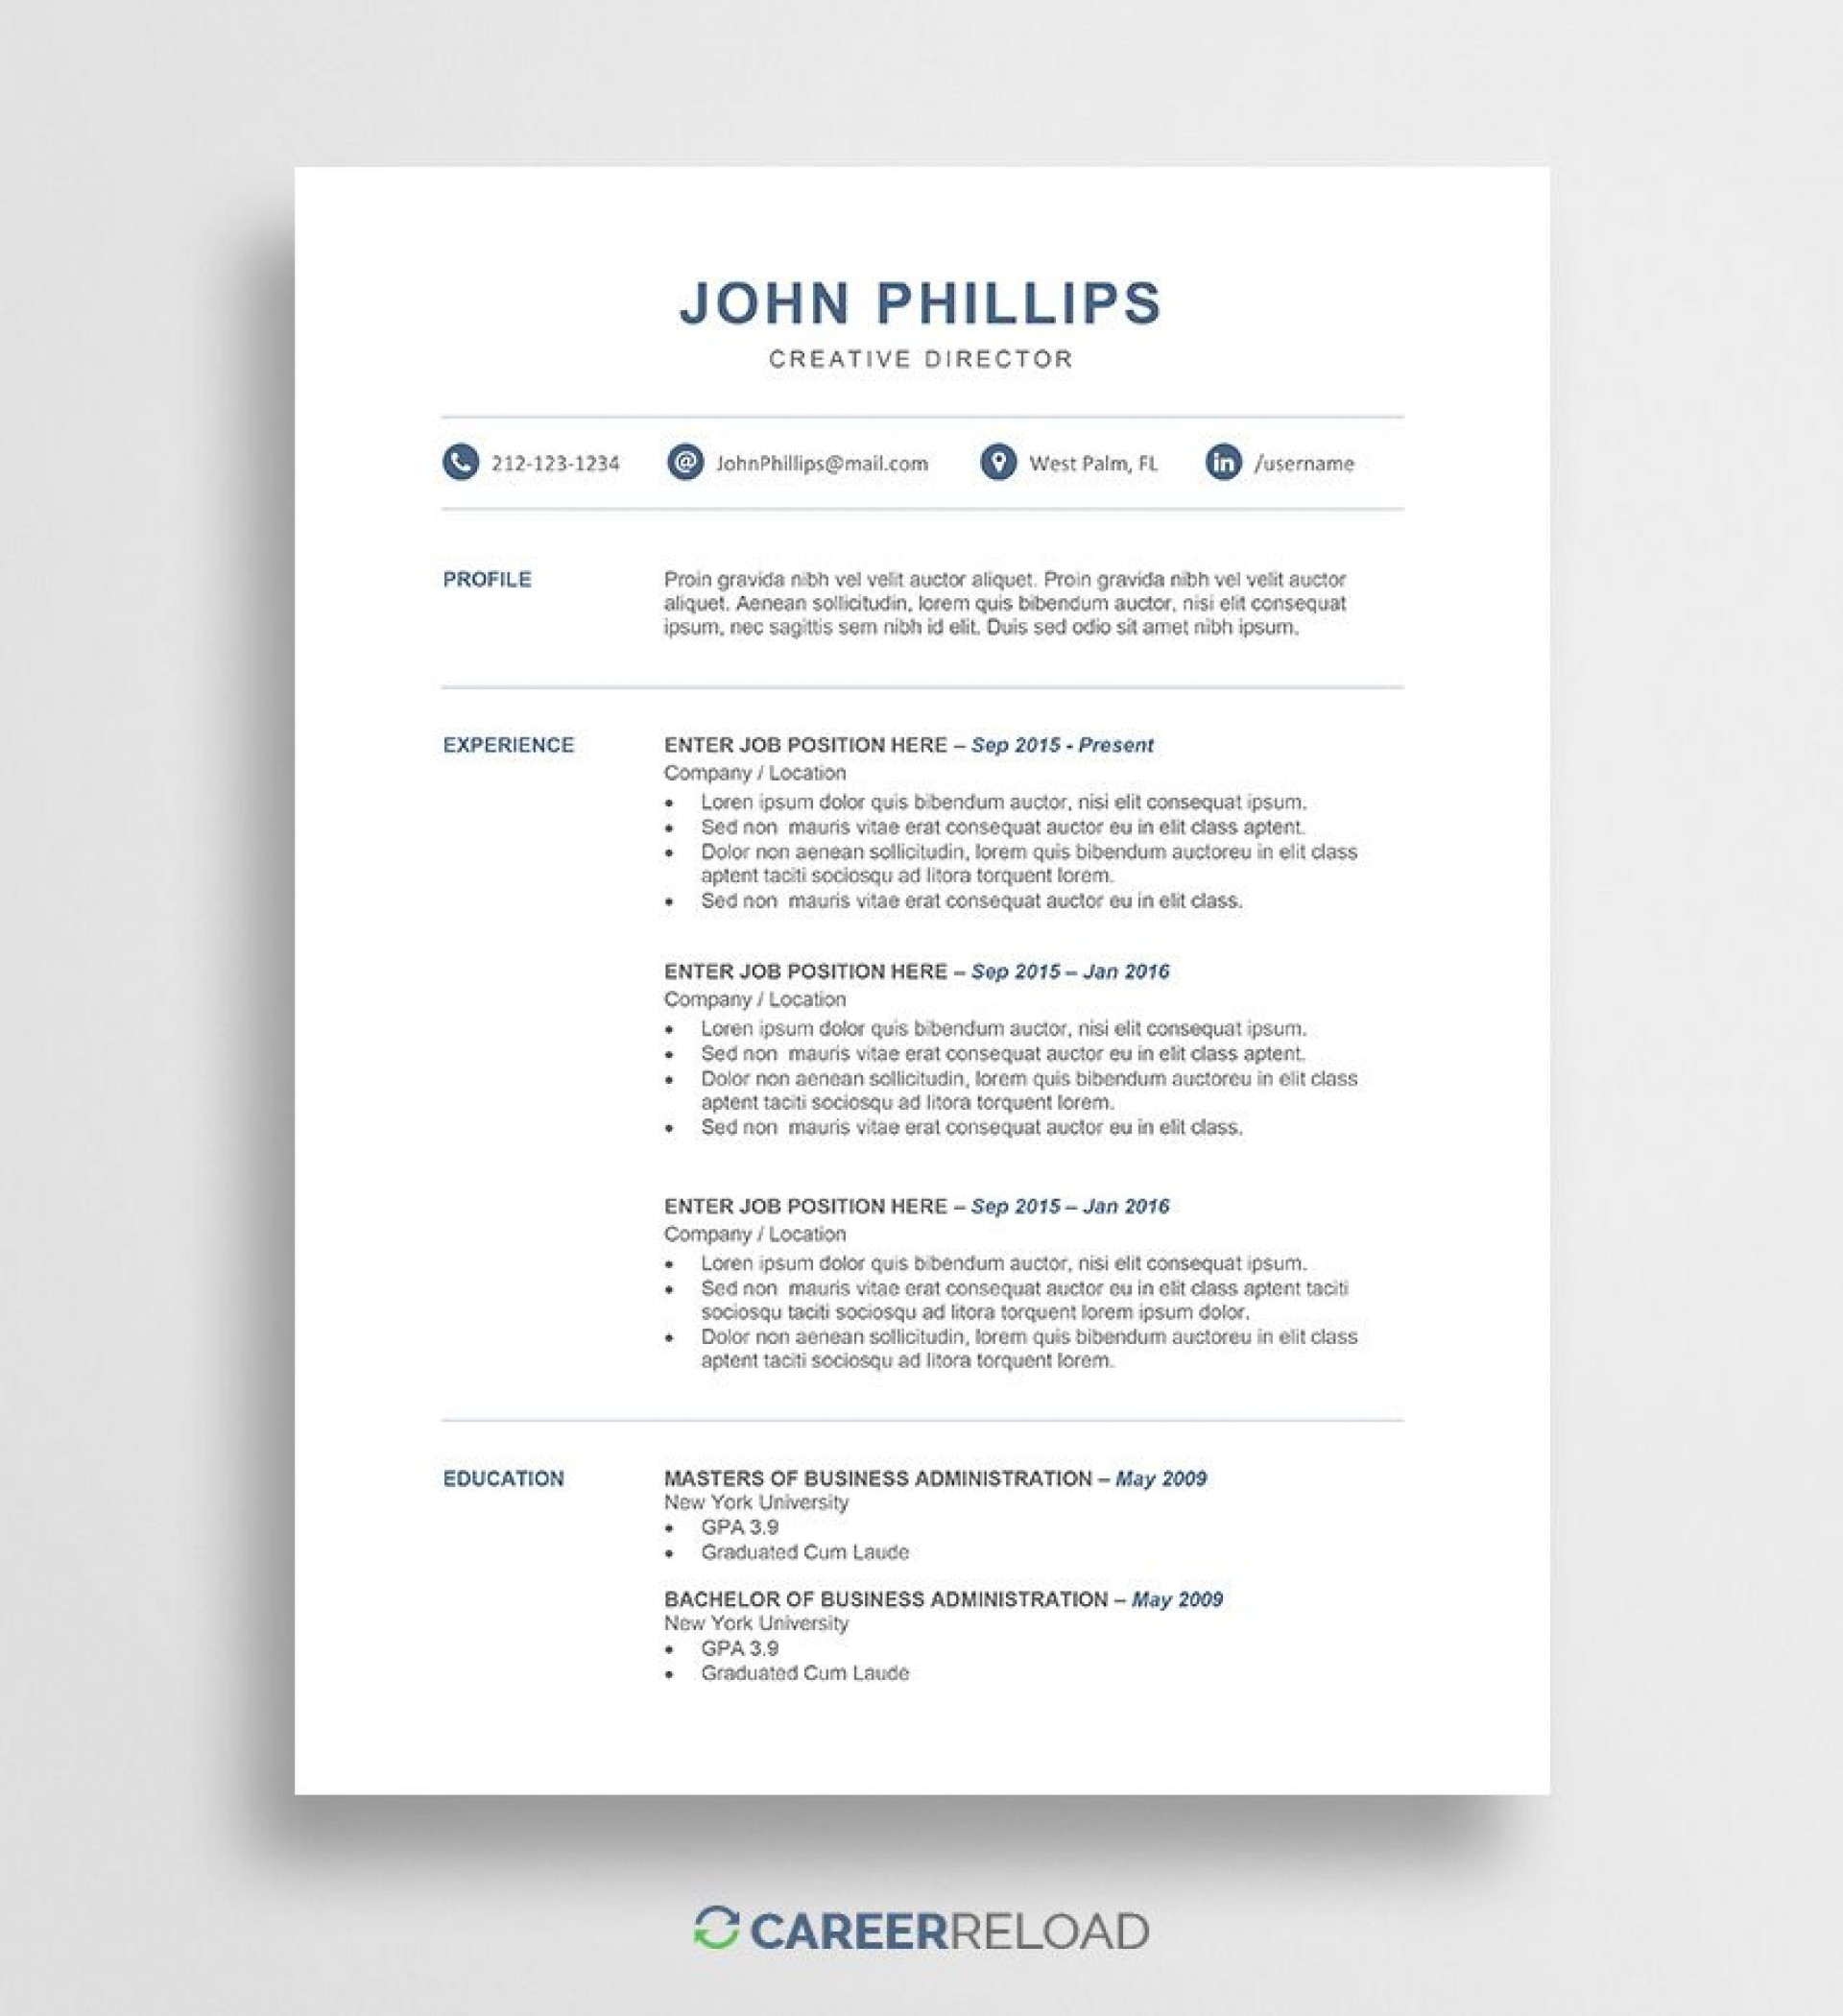 009 Awesome Resume Template M Word Free High Def  Modern Microsoft Download 2010 Cv With Picture1920